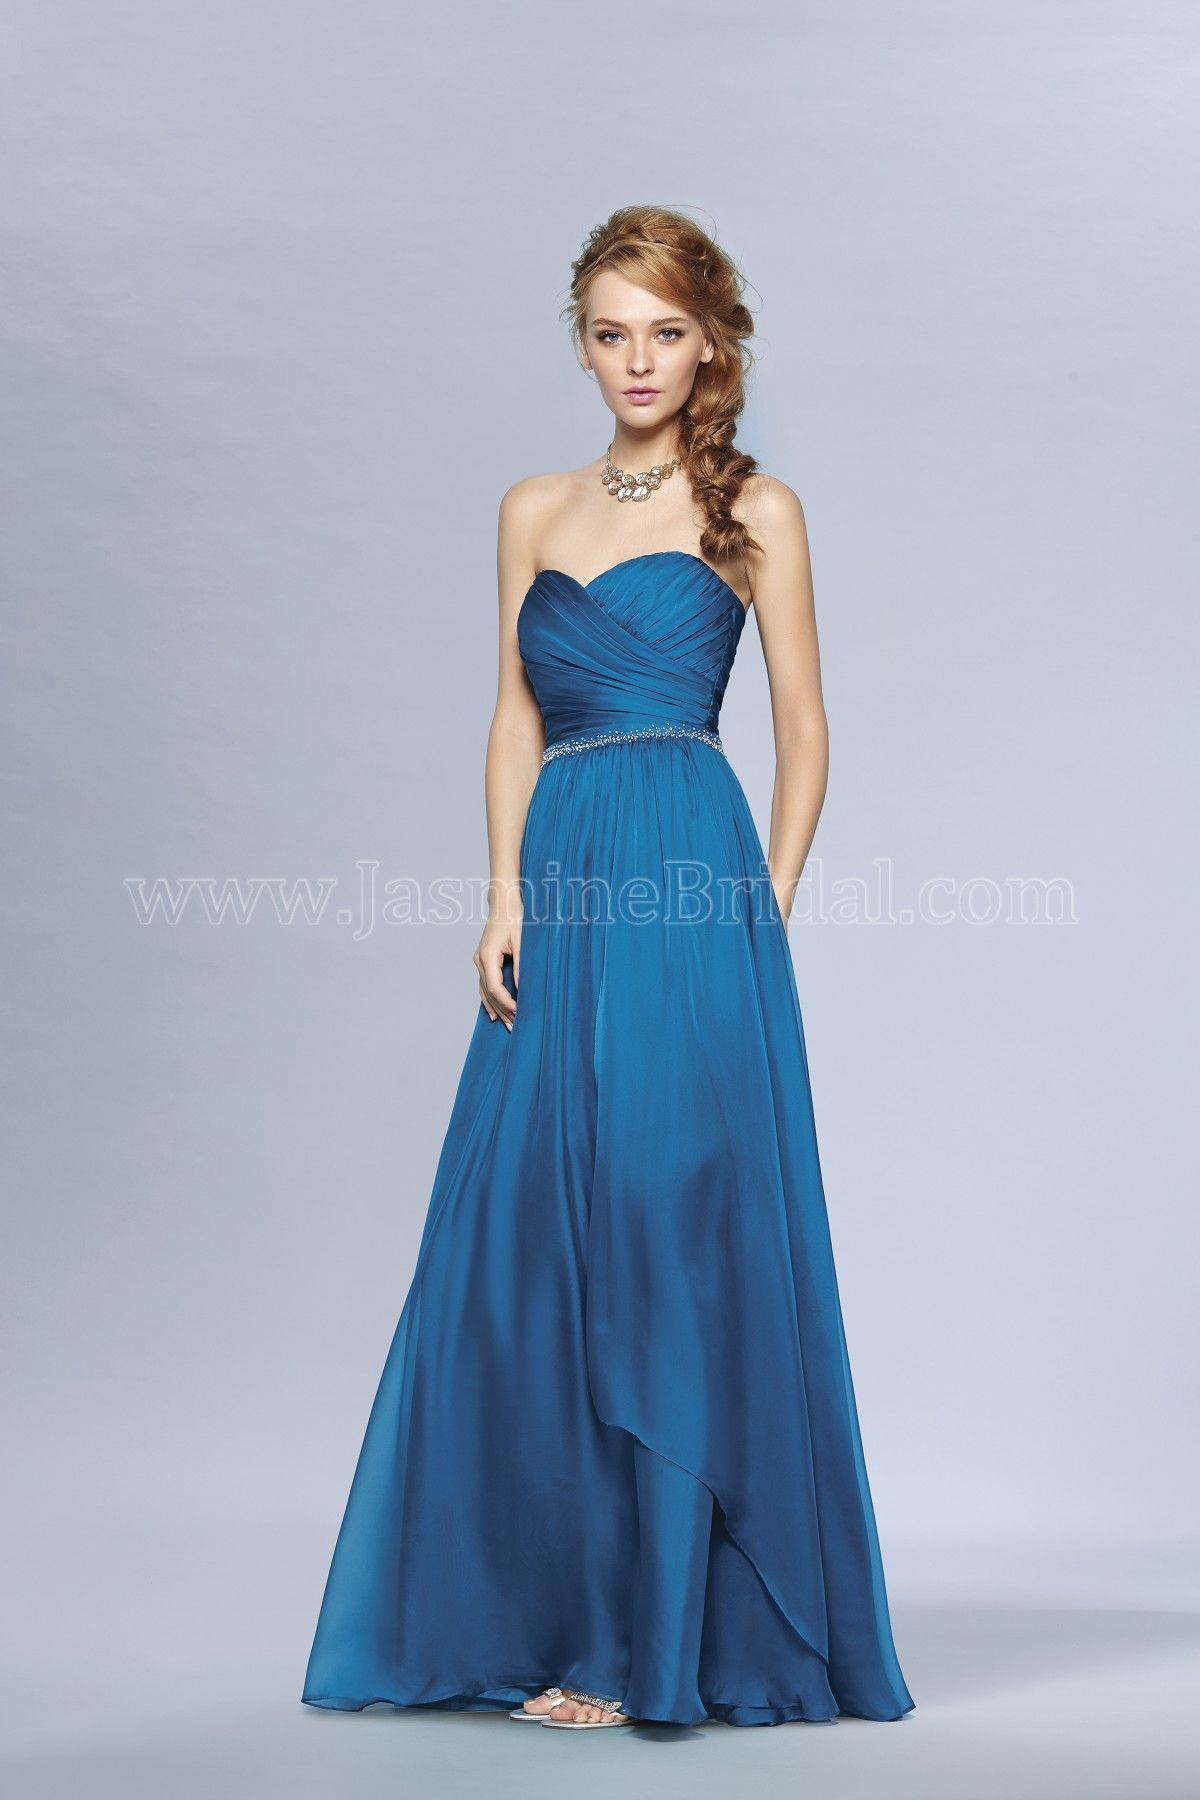 Jasmine bridal comes in black and cranberry bridesmaid pinterest